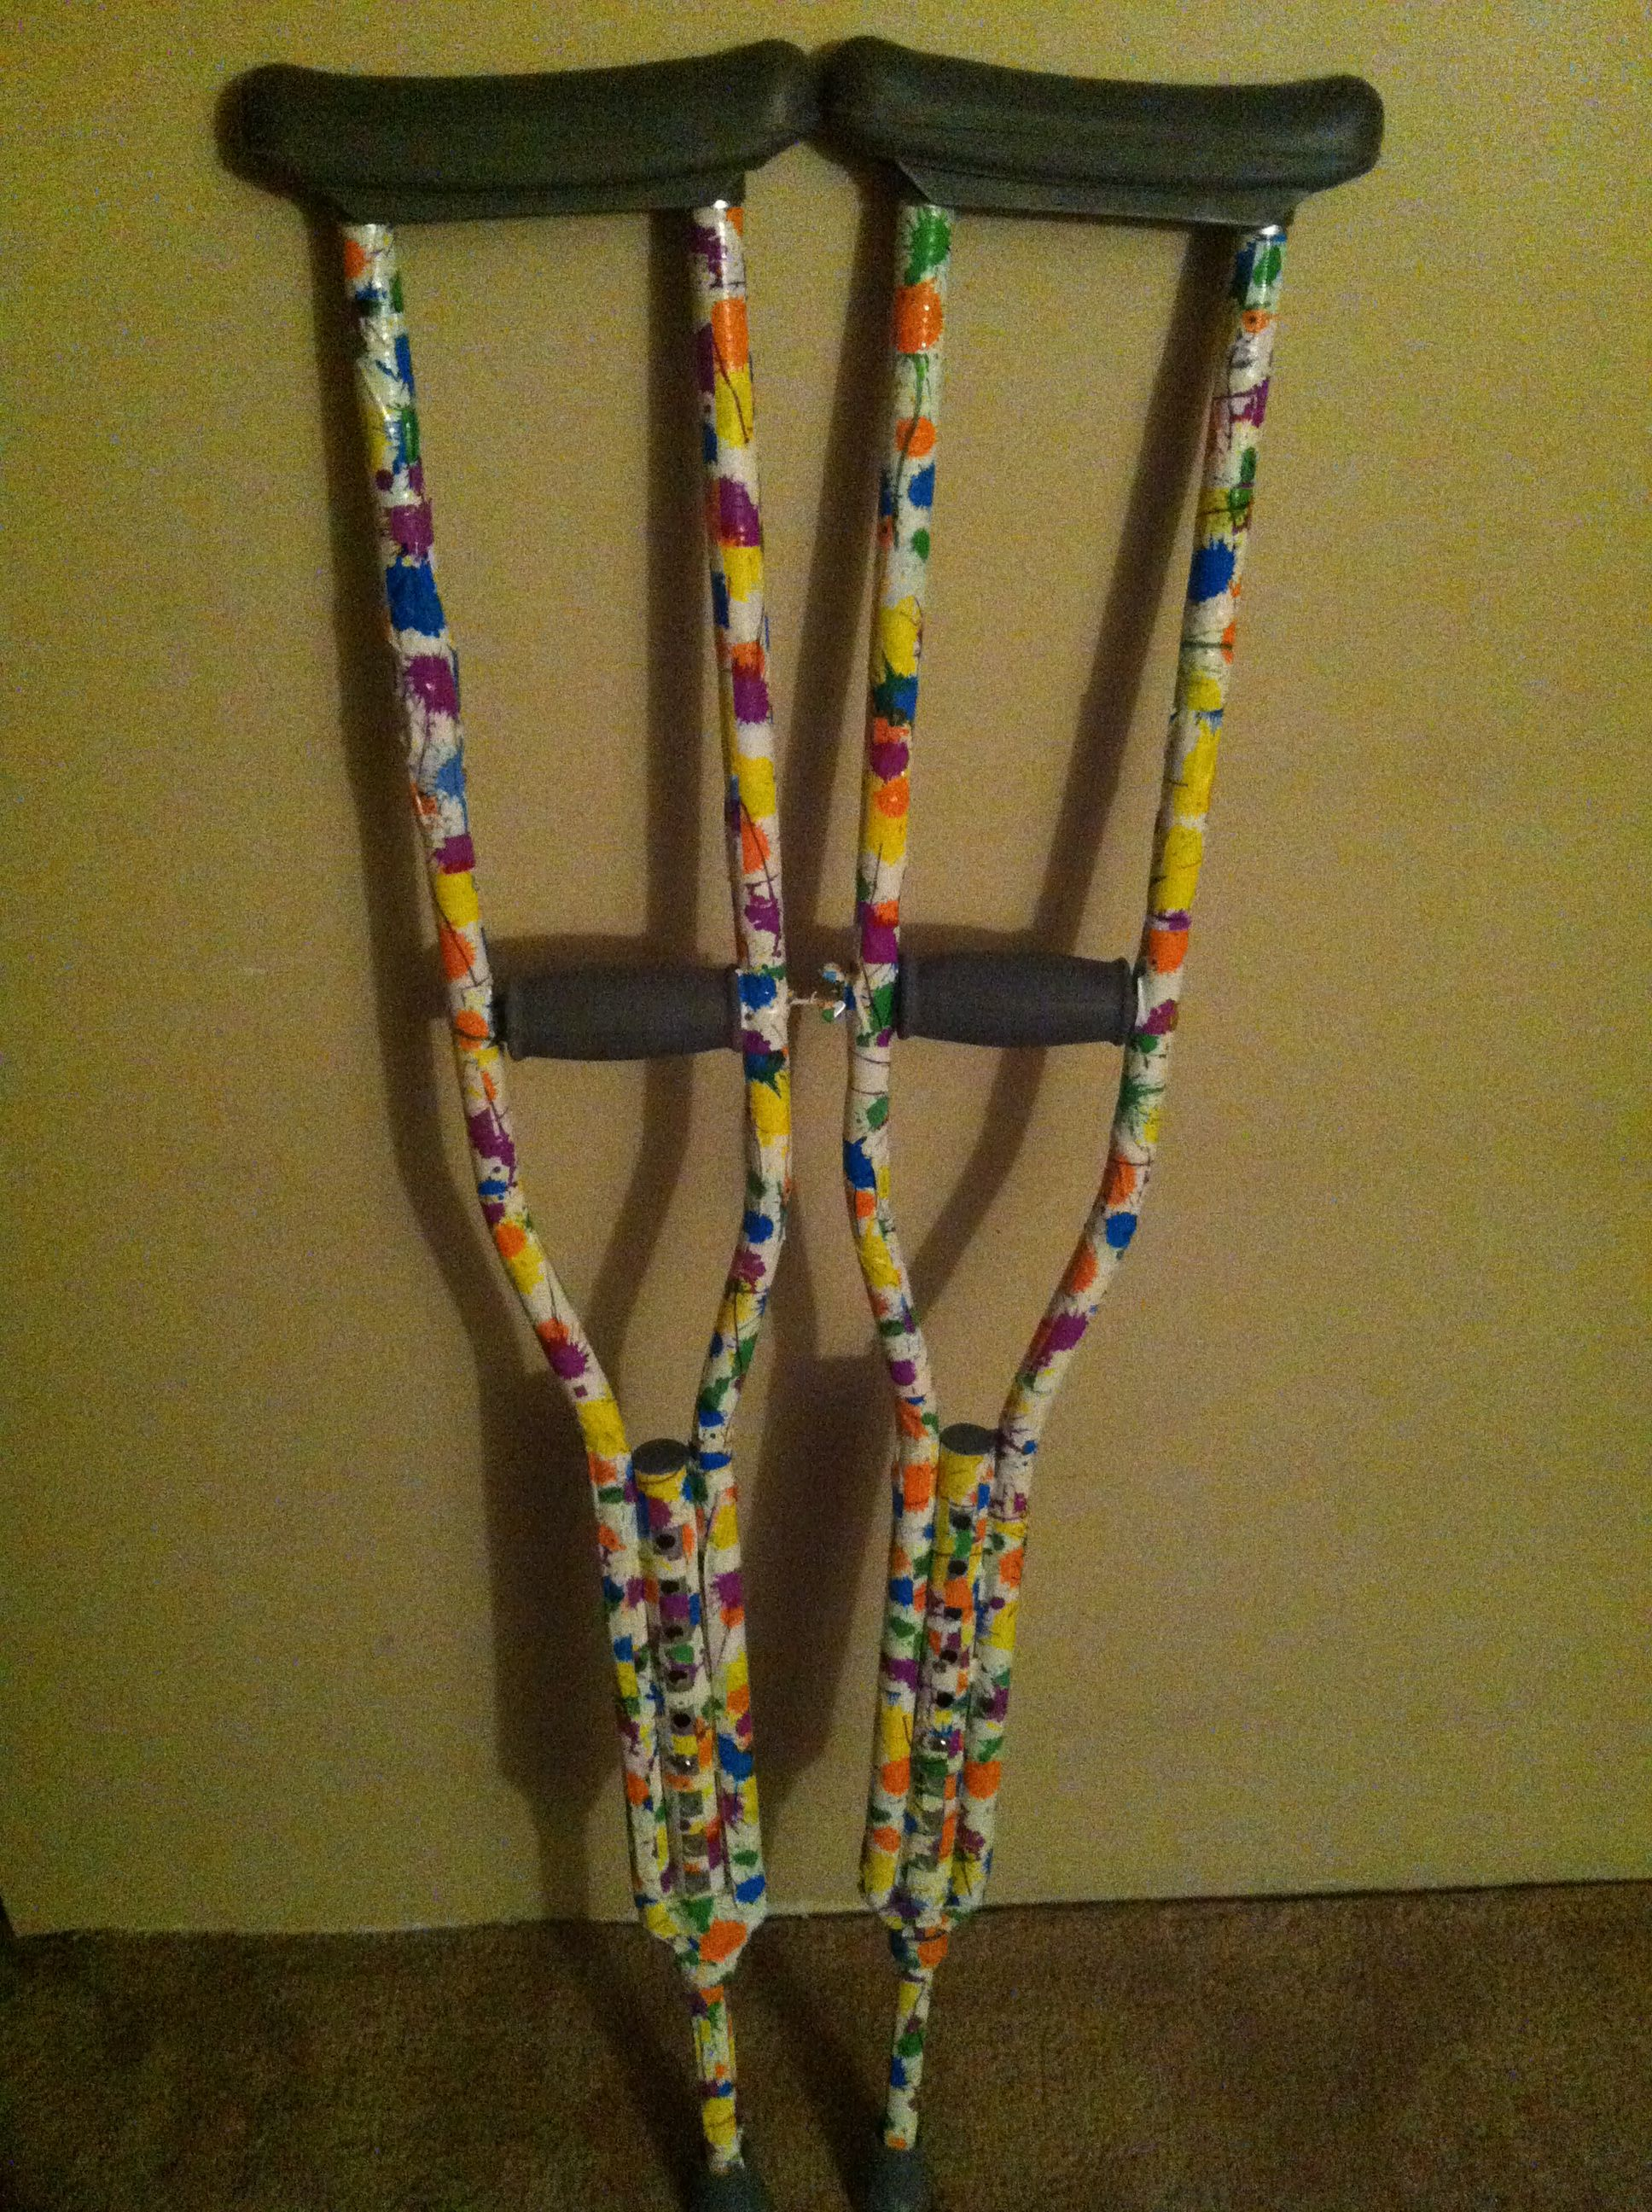 customized crutches 2 rolls of fun duct tape from menards and a